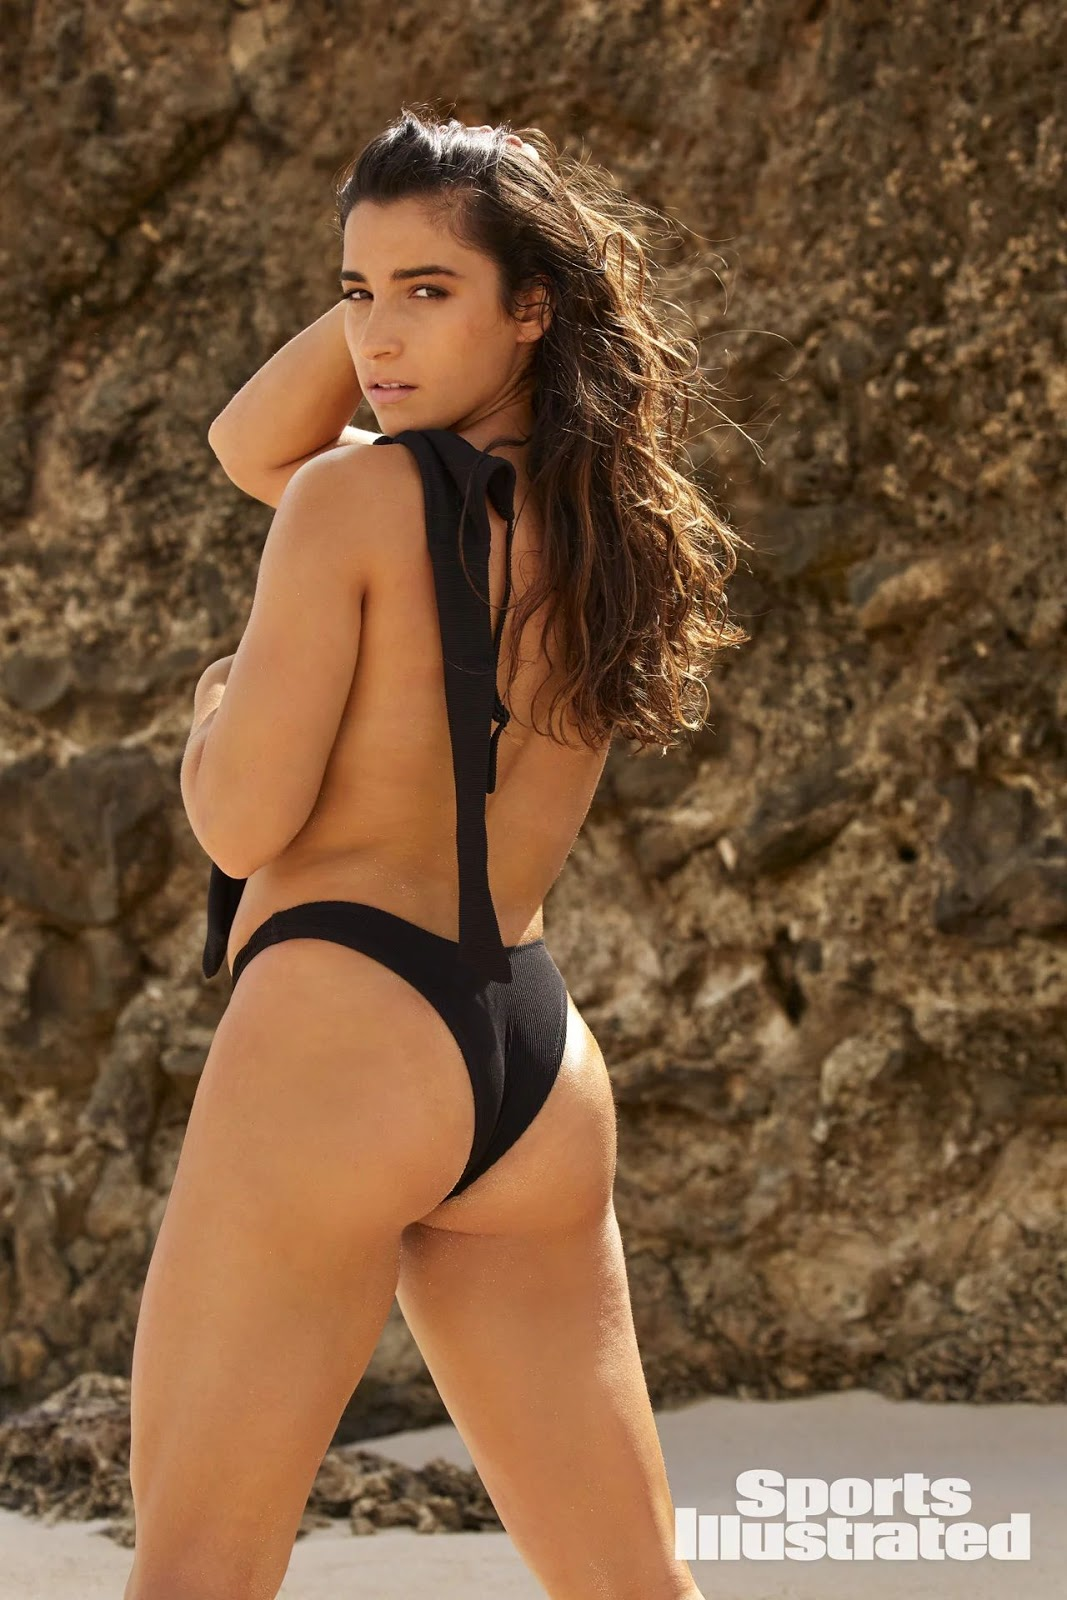 Aly raisman how did she not win gold with that body 3